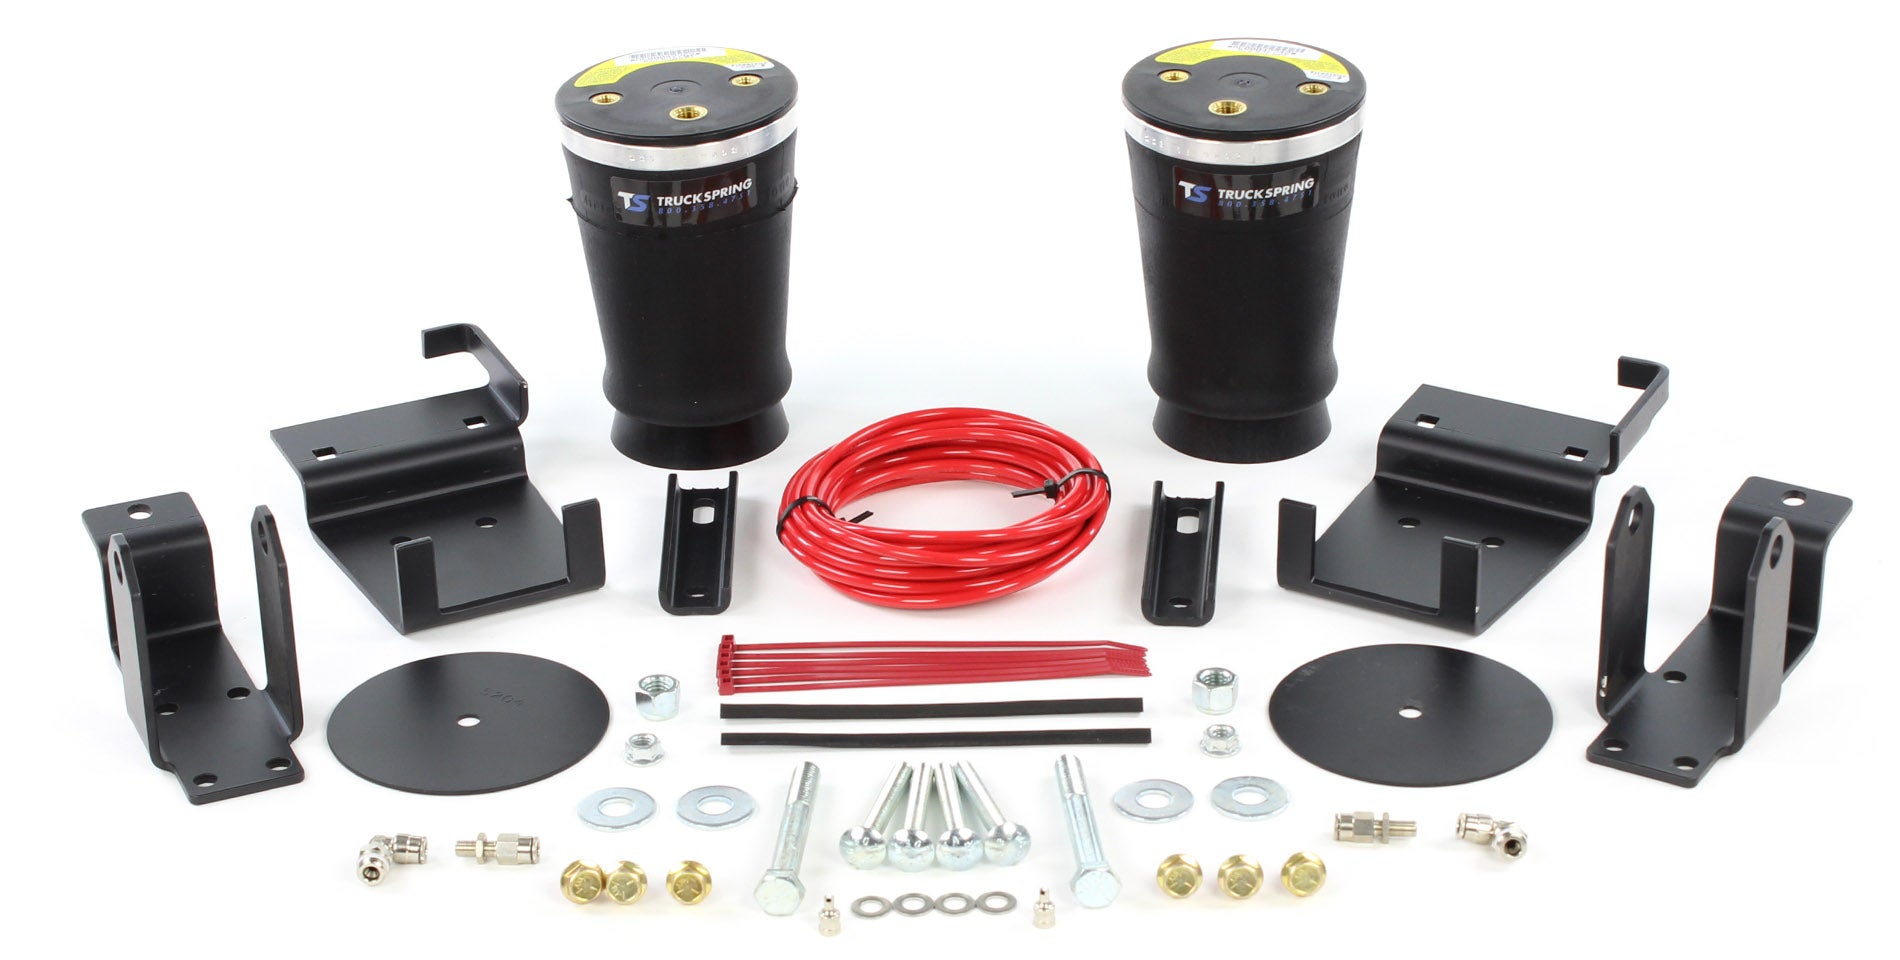 Air Bag Suspension Kits for Towing & Hauling